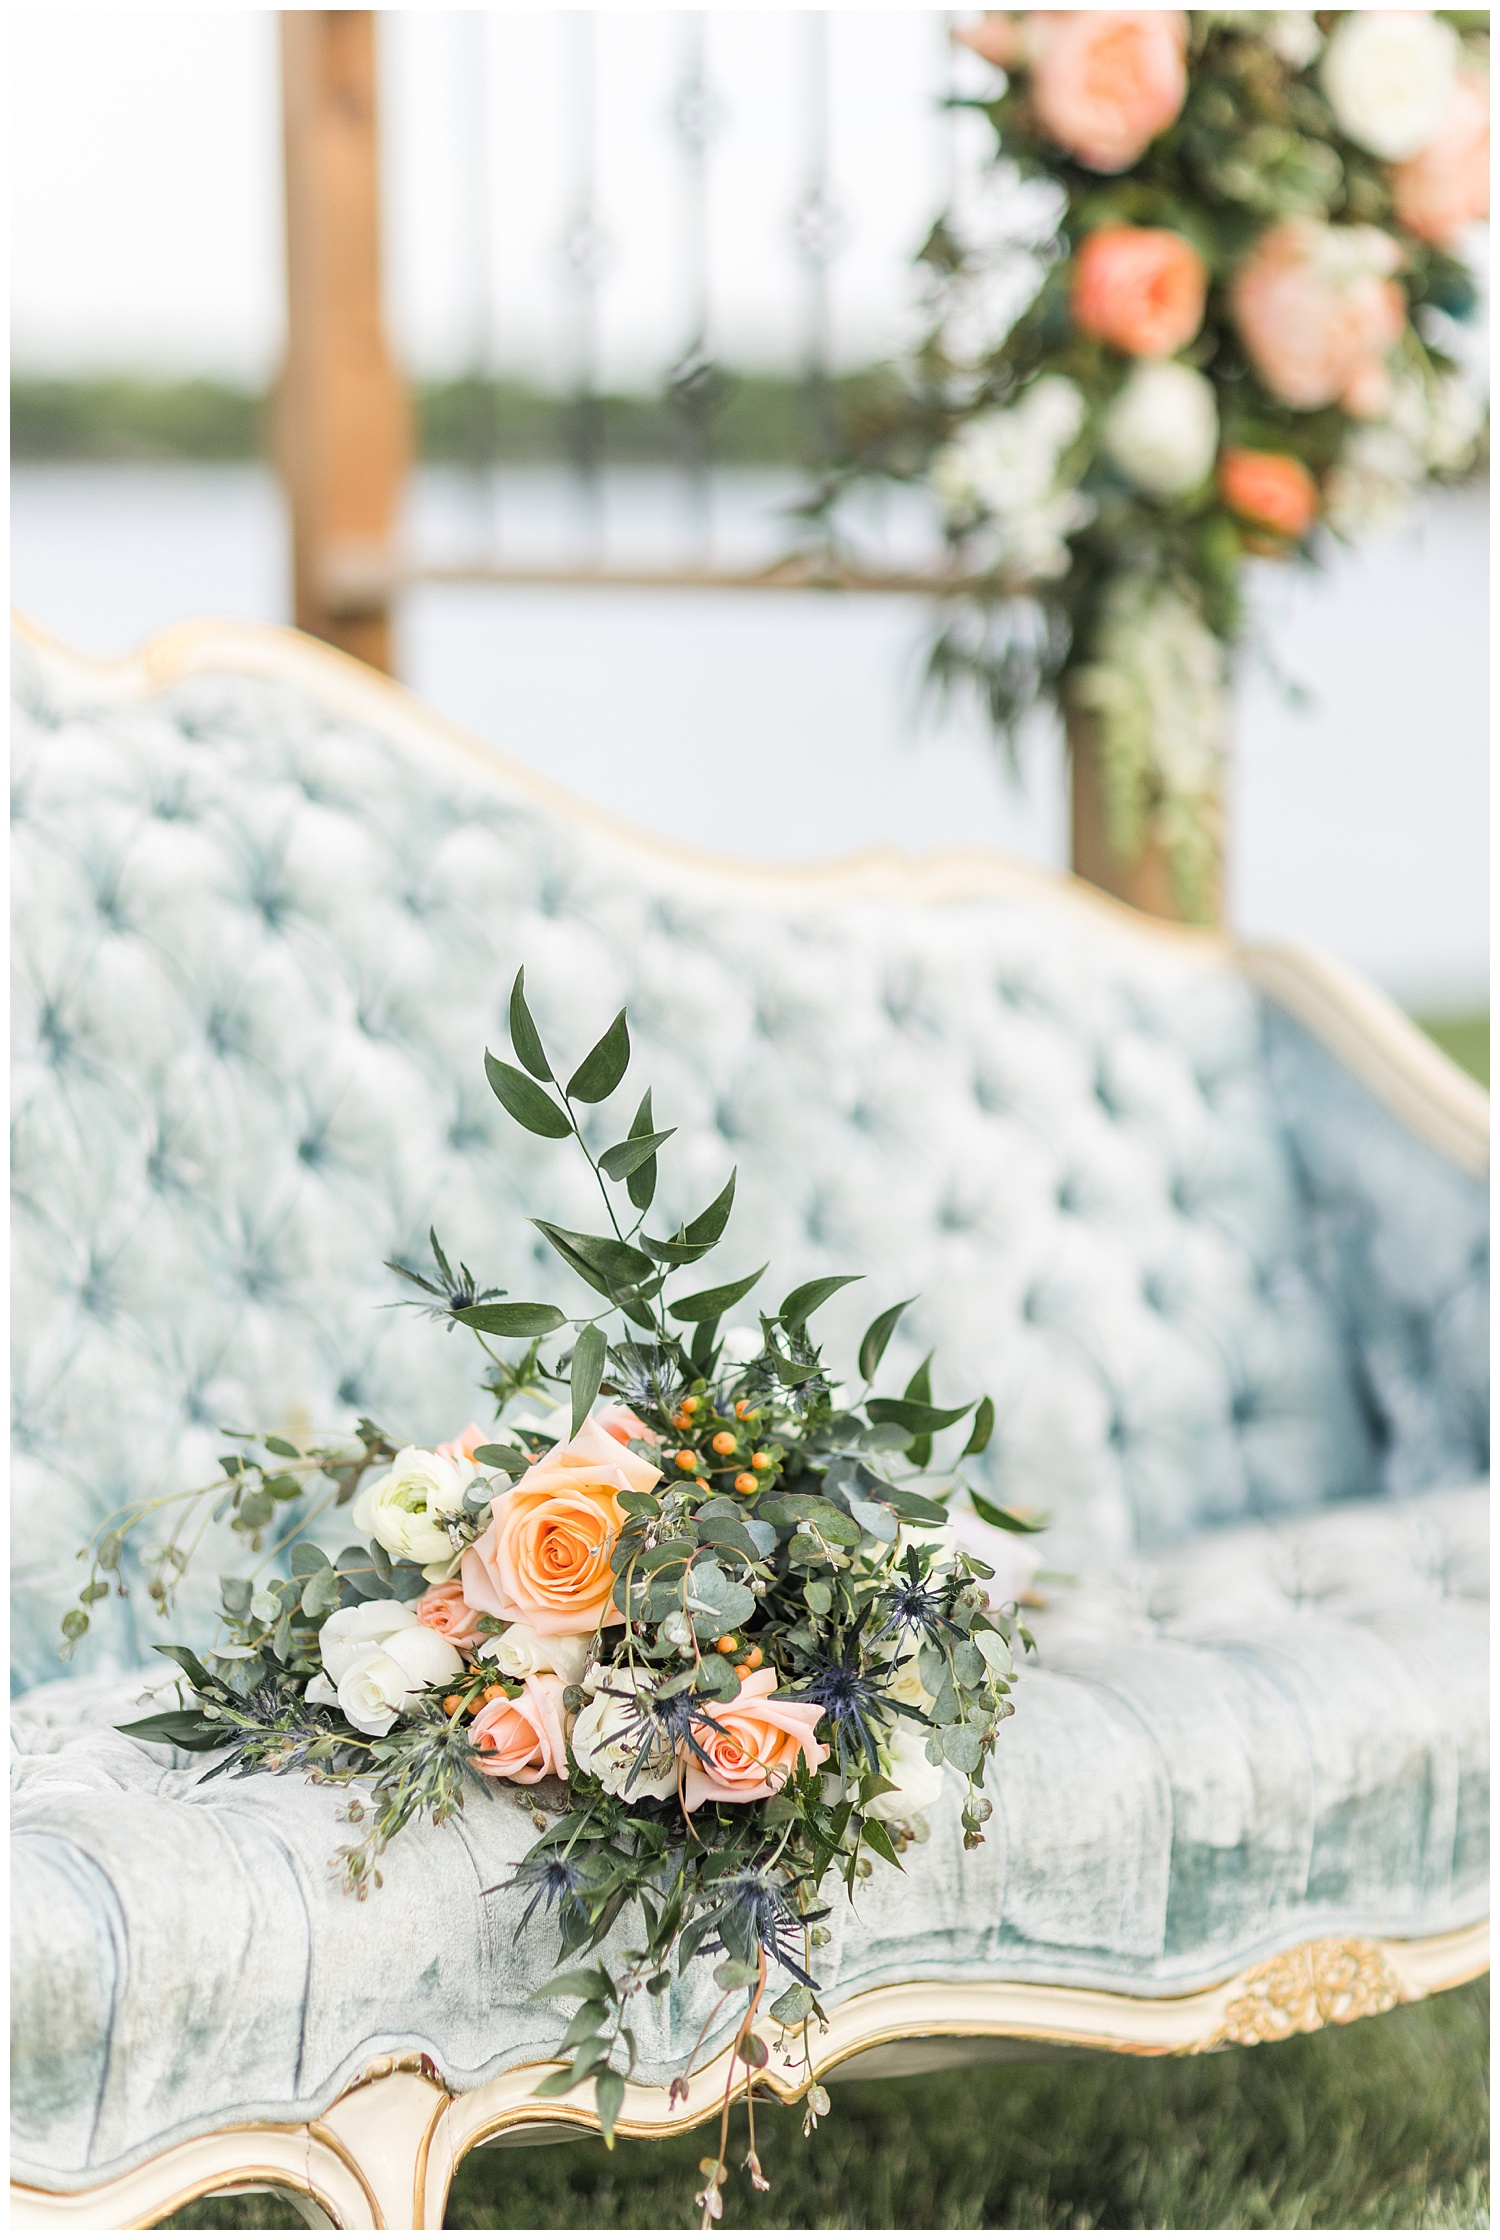 Peach and white rose wedding bouquet with white ranunculus and eucalyptus sitting on top of a dusty blue victorian couch | CB Studio